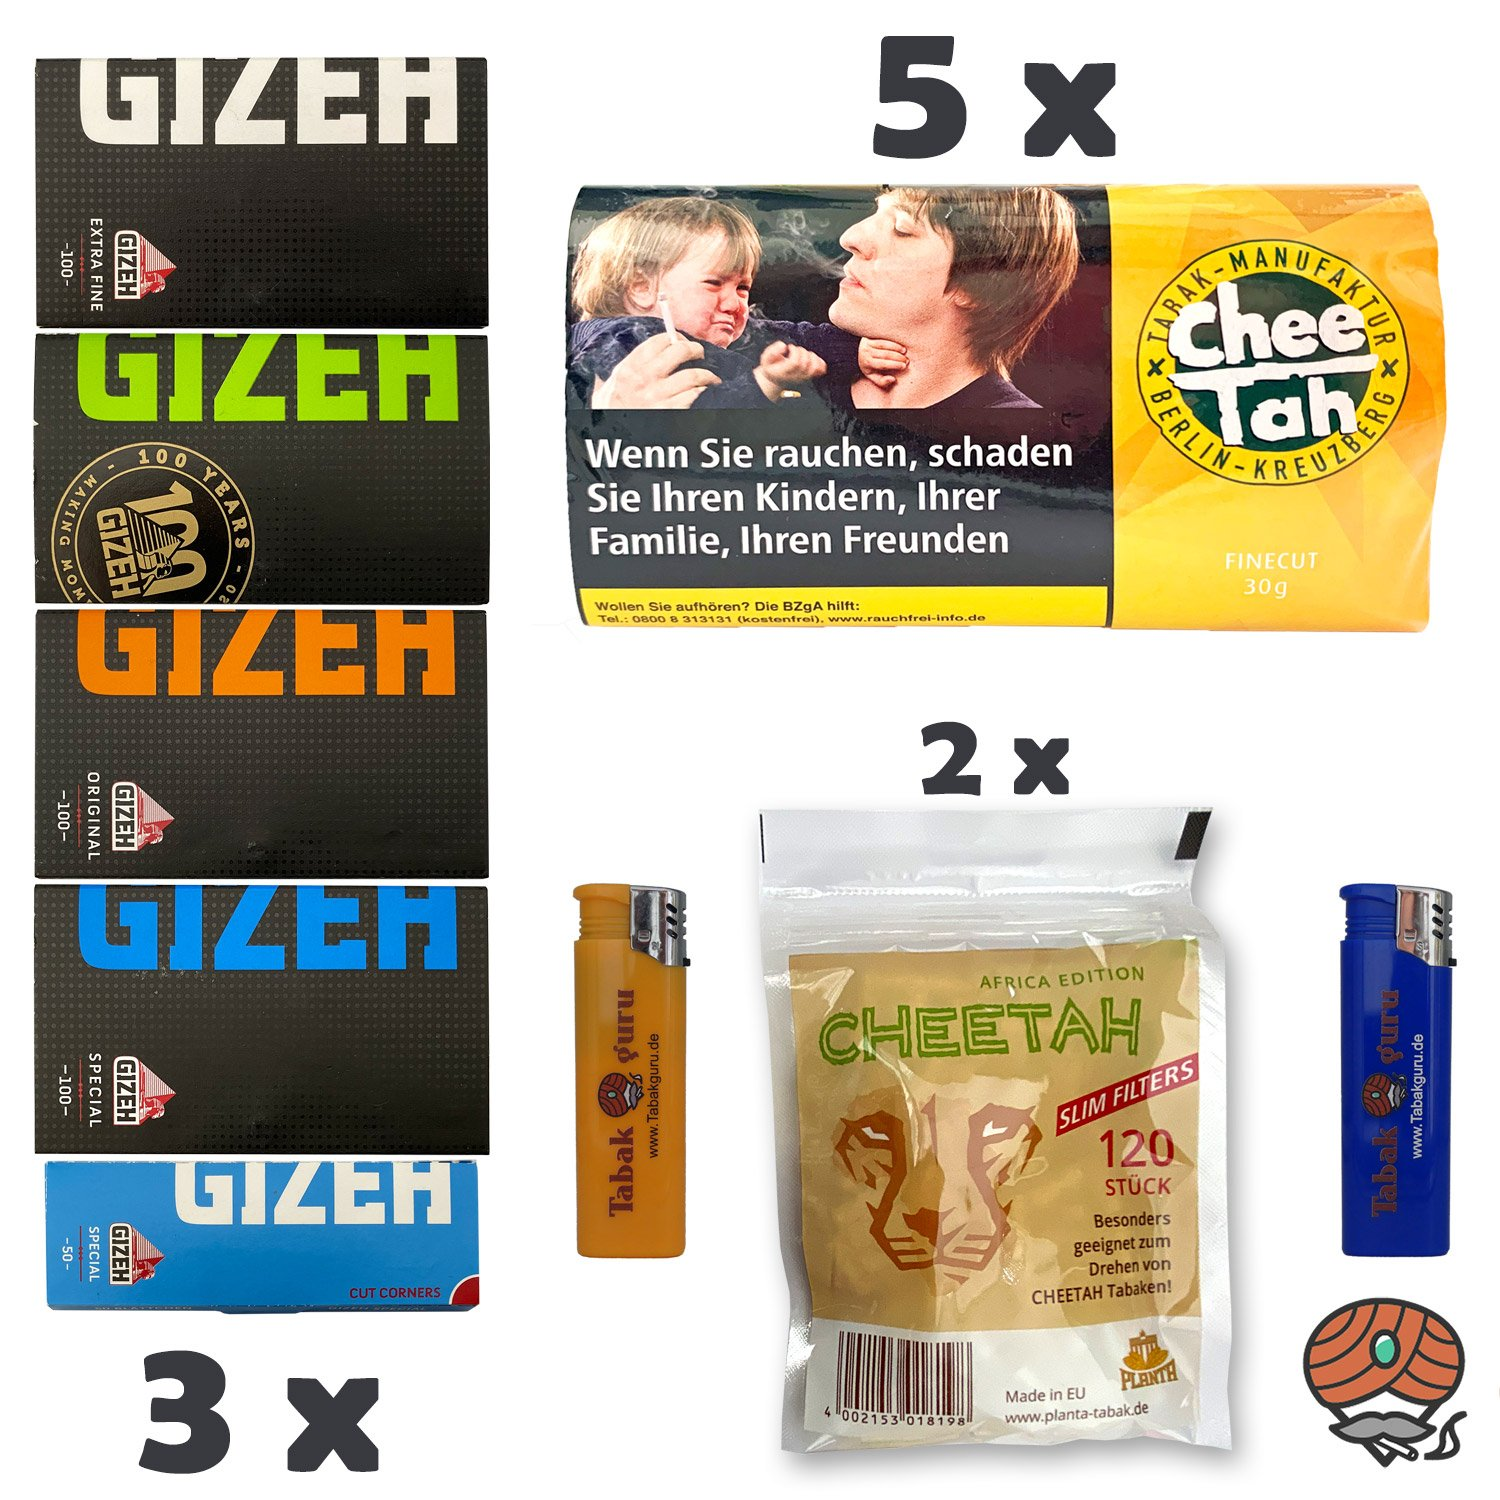 5 x Chee Tah Gelb Virginia Blend Drehtabak Pouch, 3 x GIZEH Papers, 2 x Slim Filter